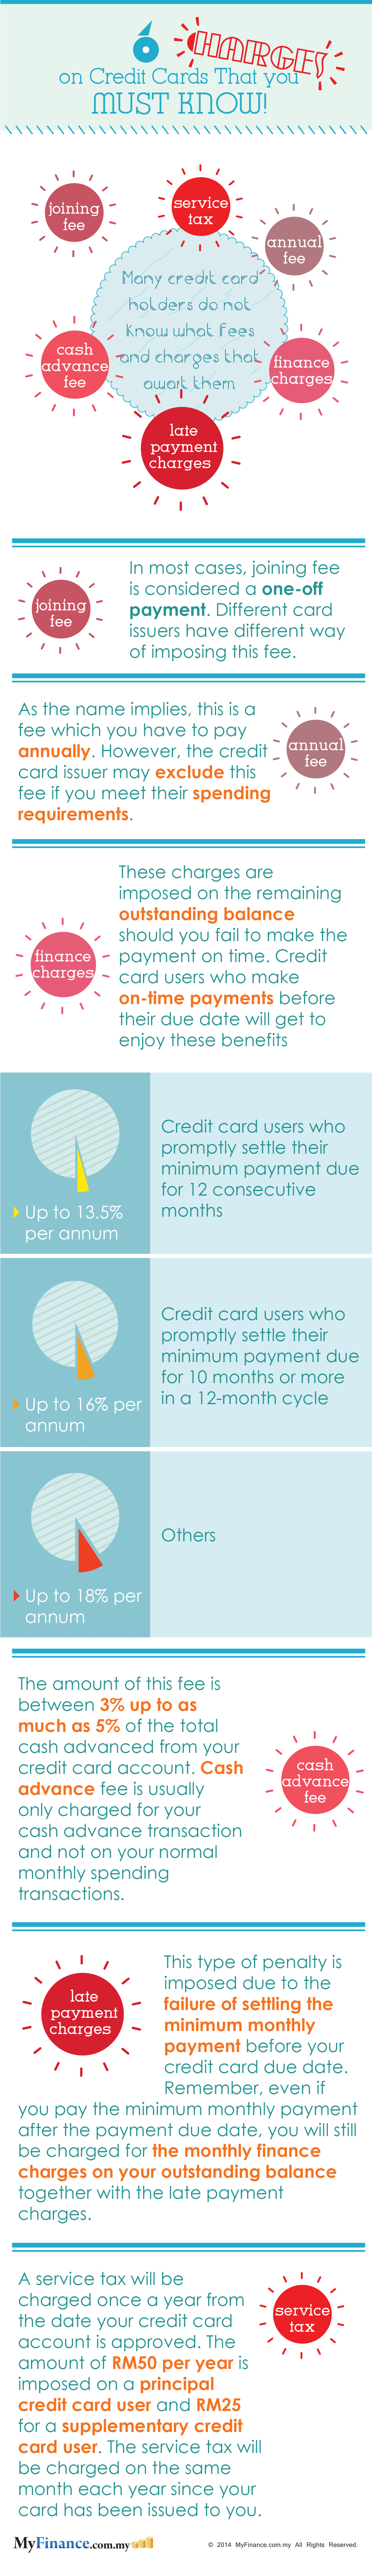 Business credit card guide business credit cards calculator and many credit card holders do not know what fees and charges that await them among the common fees and charges are joining fee annual fee cash advance fee reheart Gallery